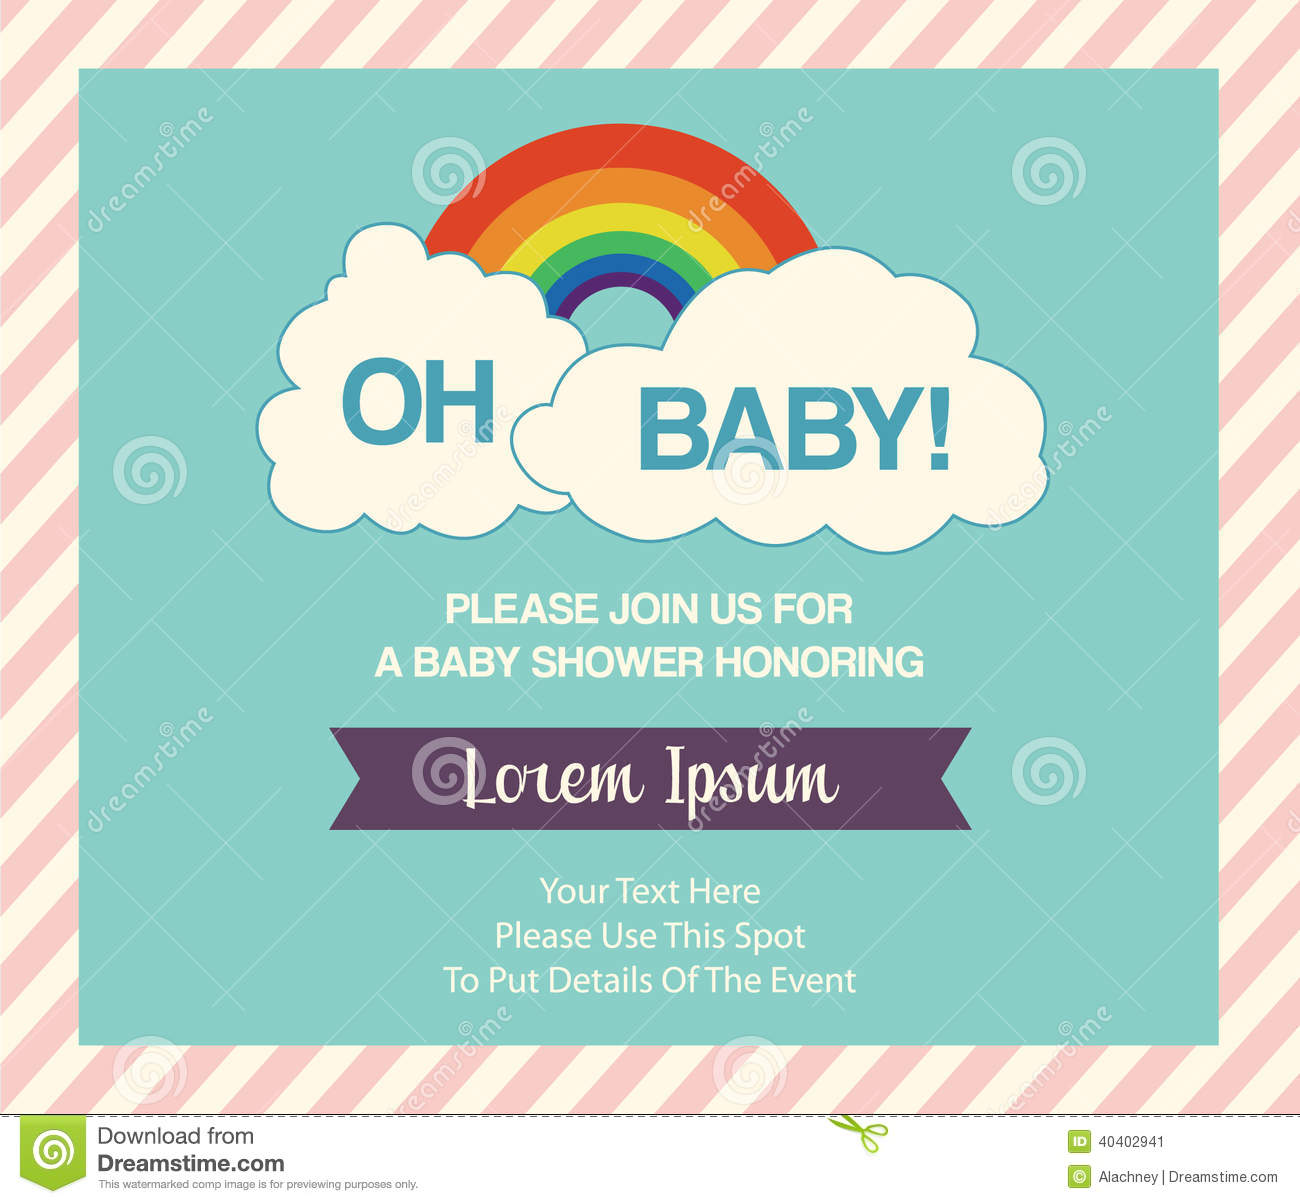 Baby Shower Invitation Template Stock Vector - Illustration of blue ...